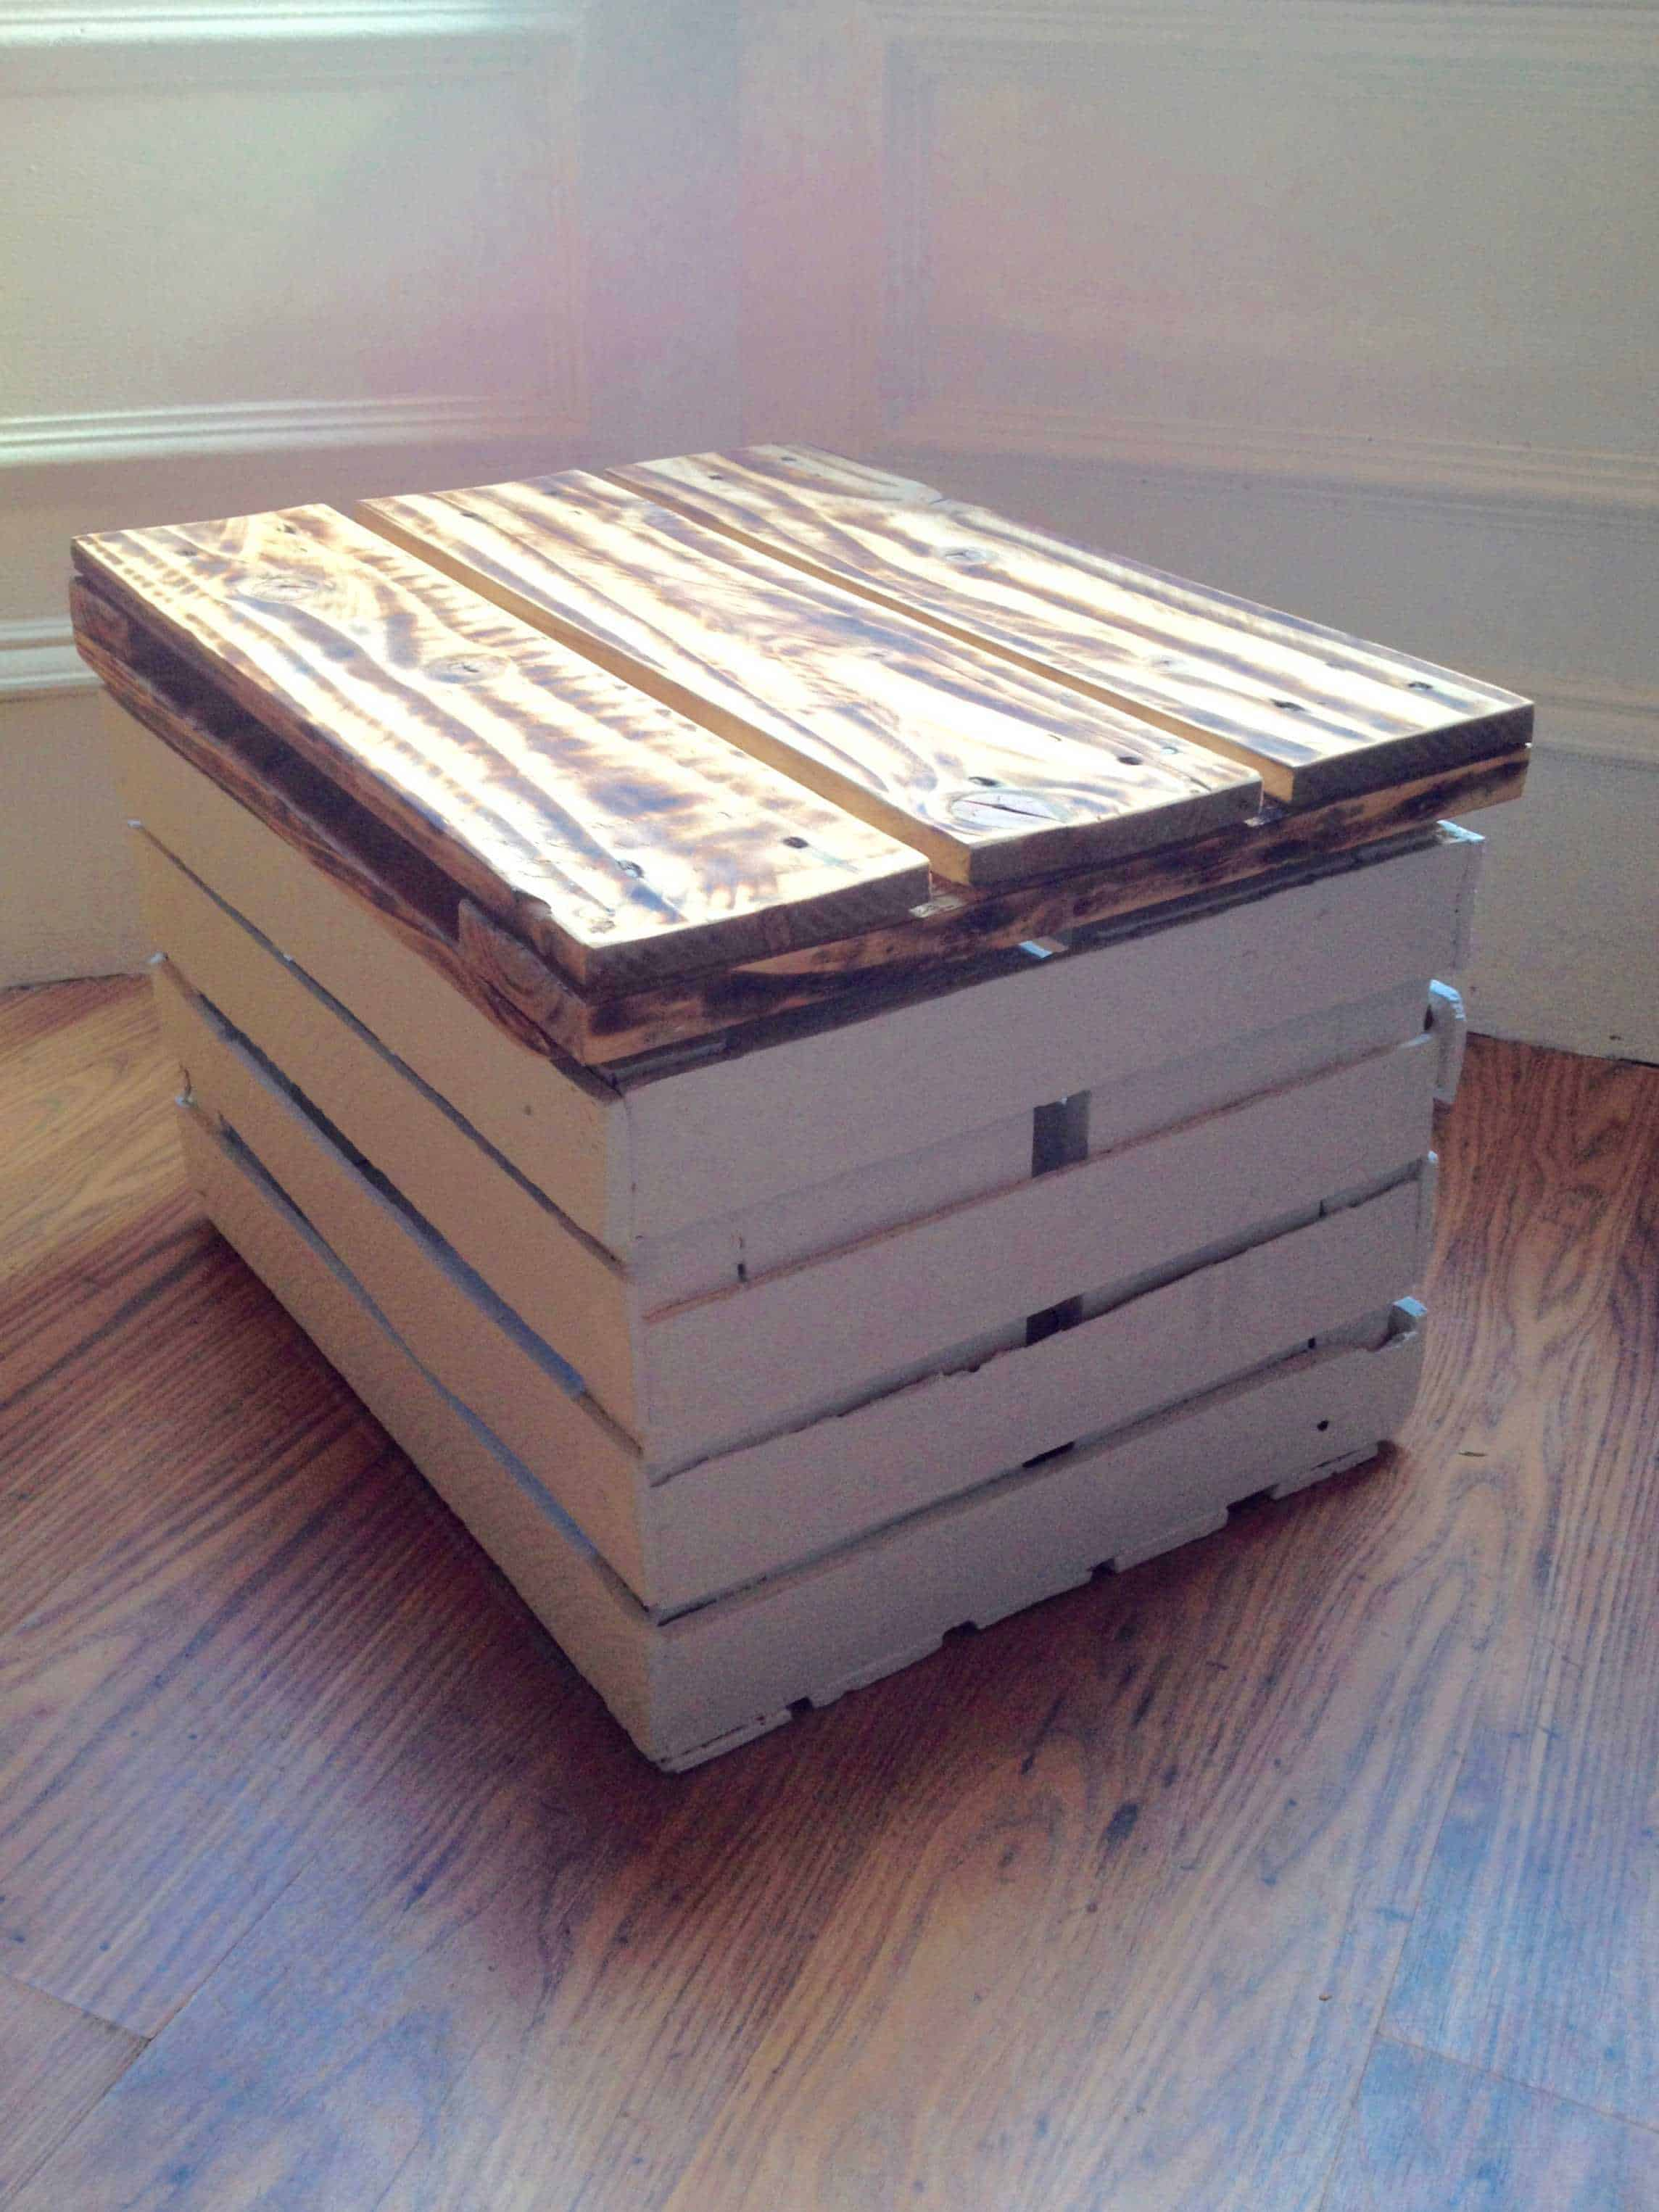 Storage Table Made from a Veg Crate & e Pallet • 1001 Pallets